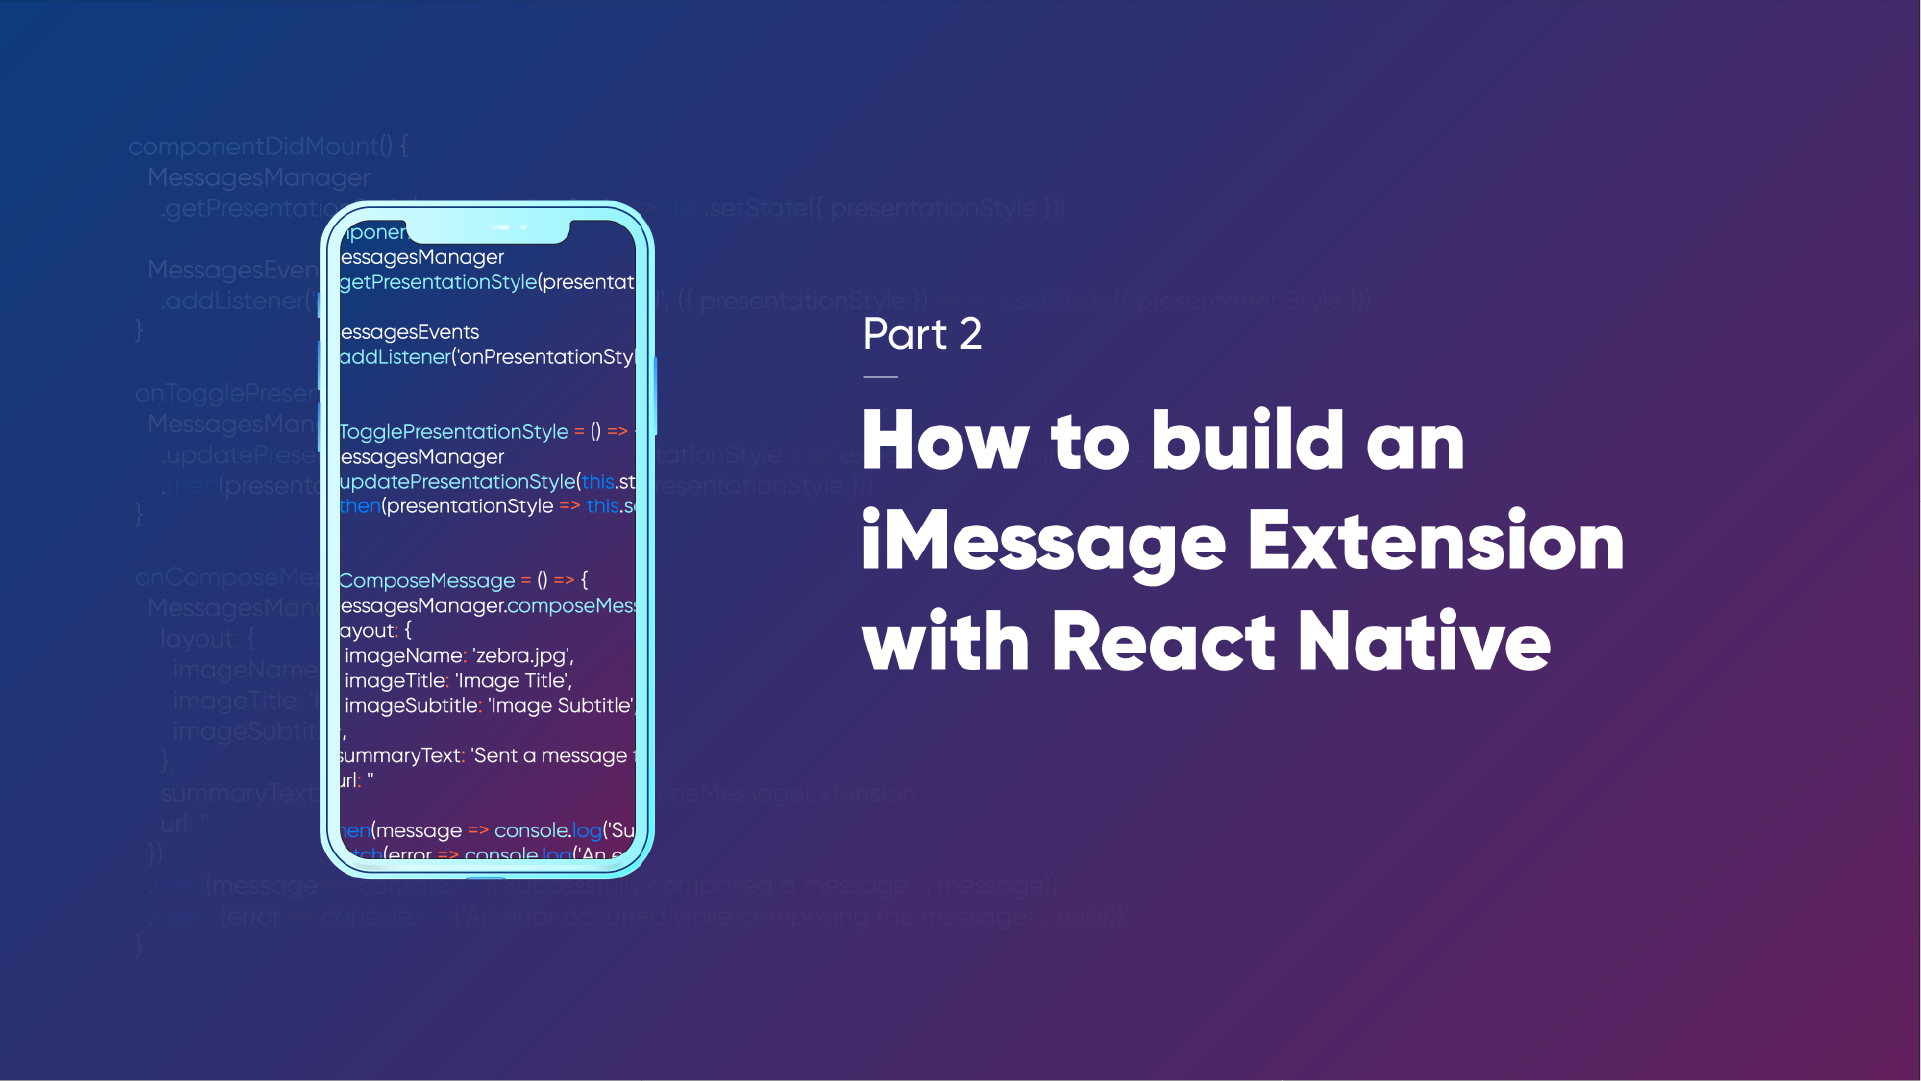 How to Build an iMessage Extension for a React Native App (Part 2